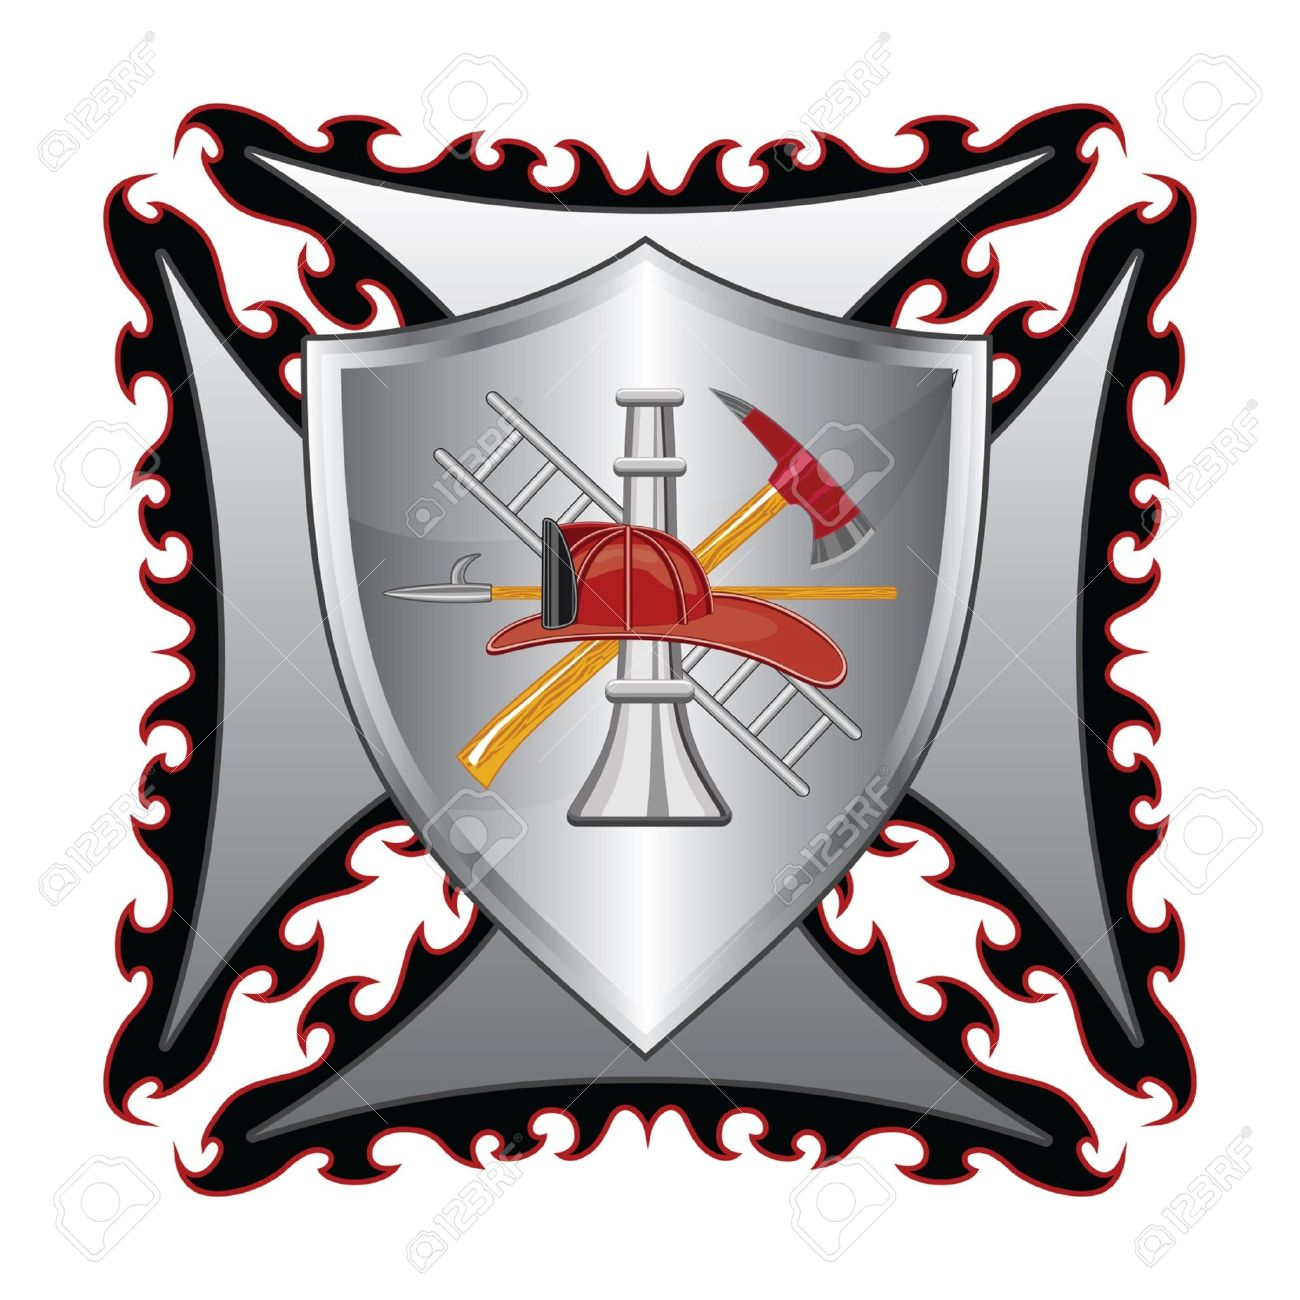 Firefighter cross with shield is an illustration of a fire firefighter cross with shield is an illustration of a fire department or firefighters maltese cross symbol buycottarizona Choice Image